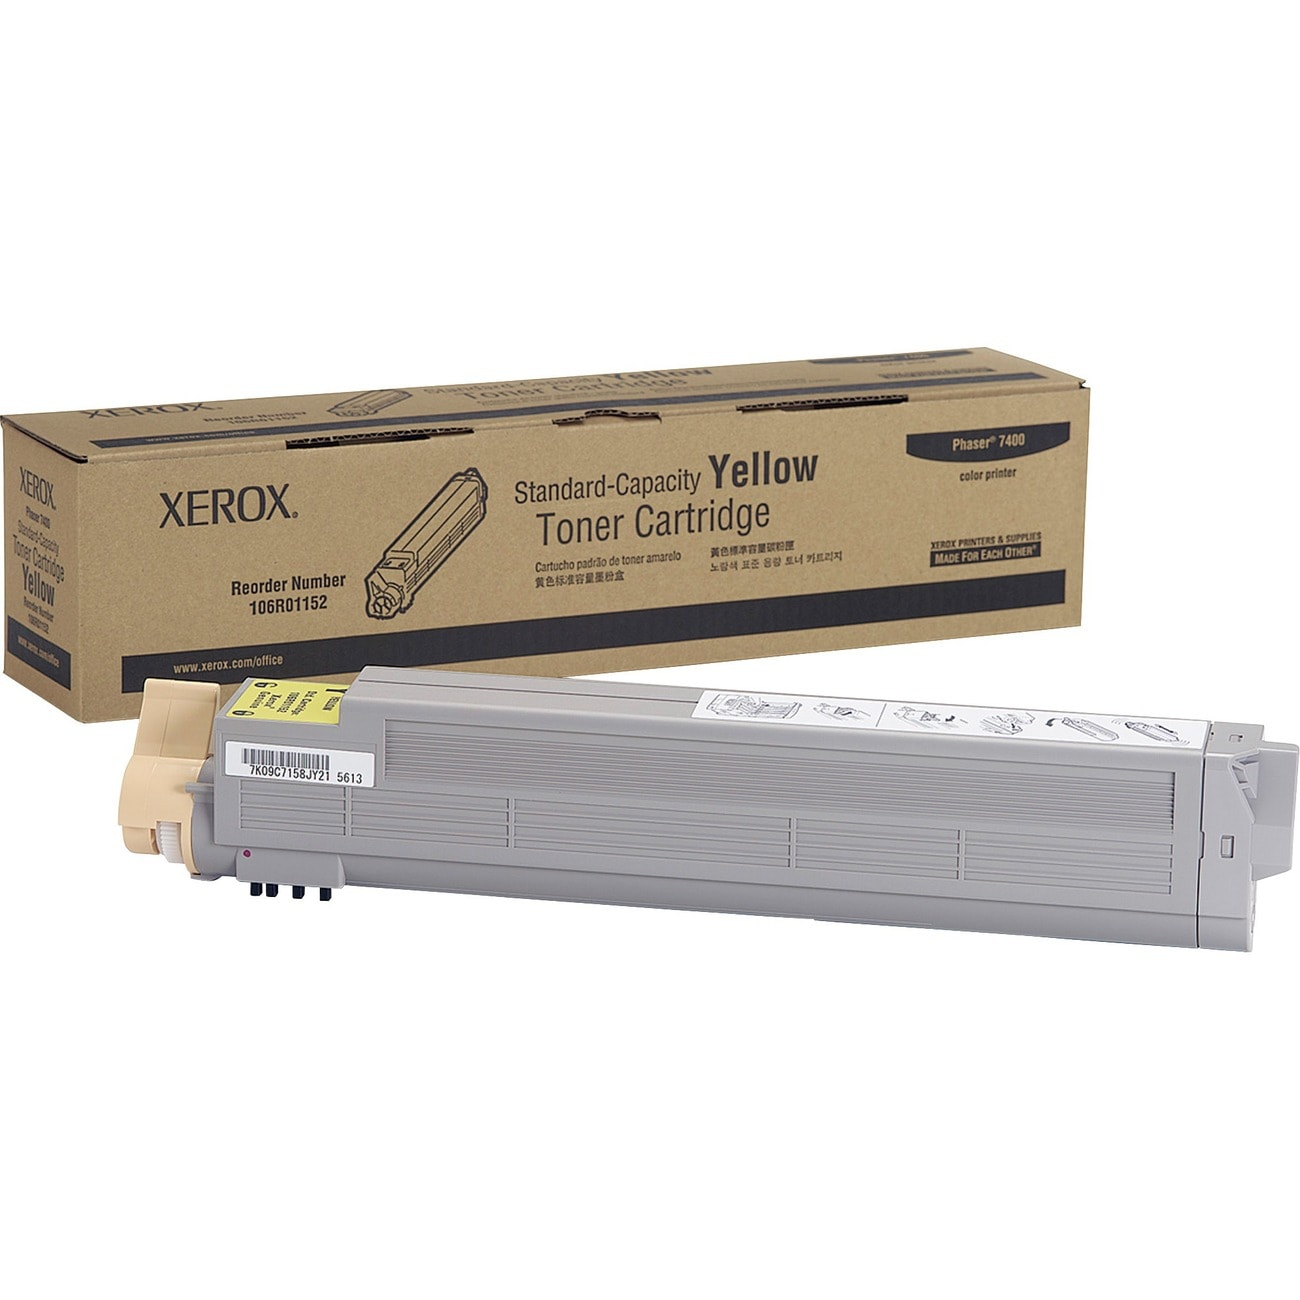 Xerox Yellow Standard-Capacity Toner Cartridge